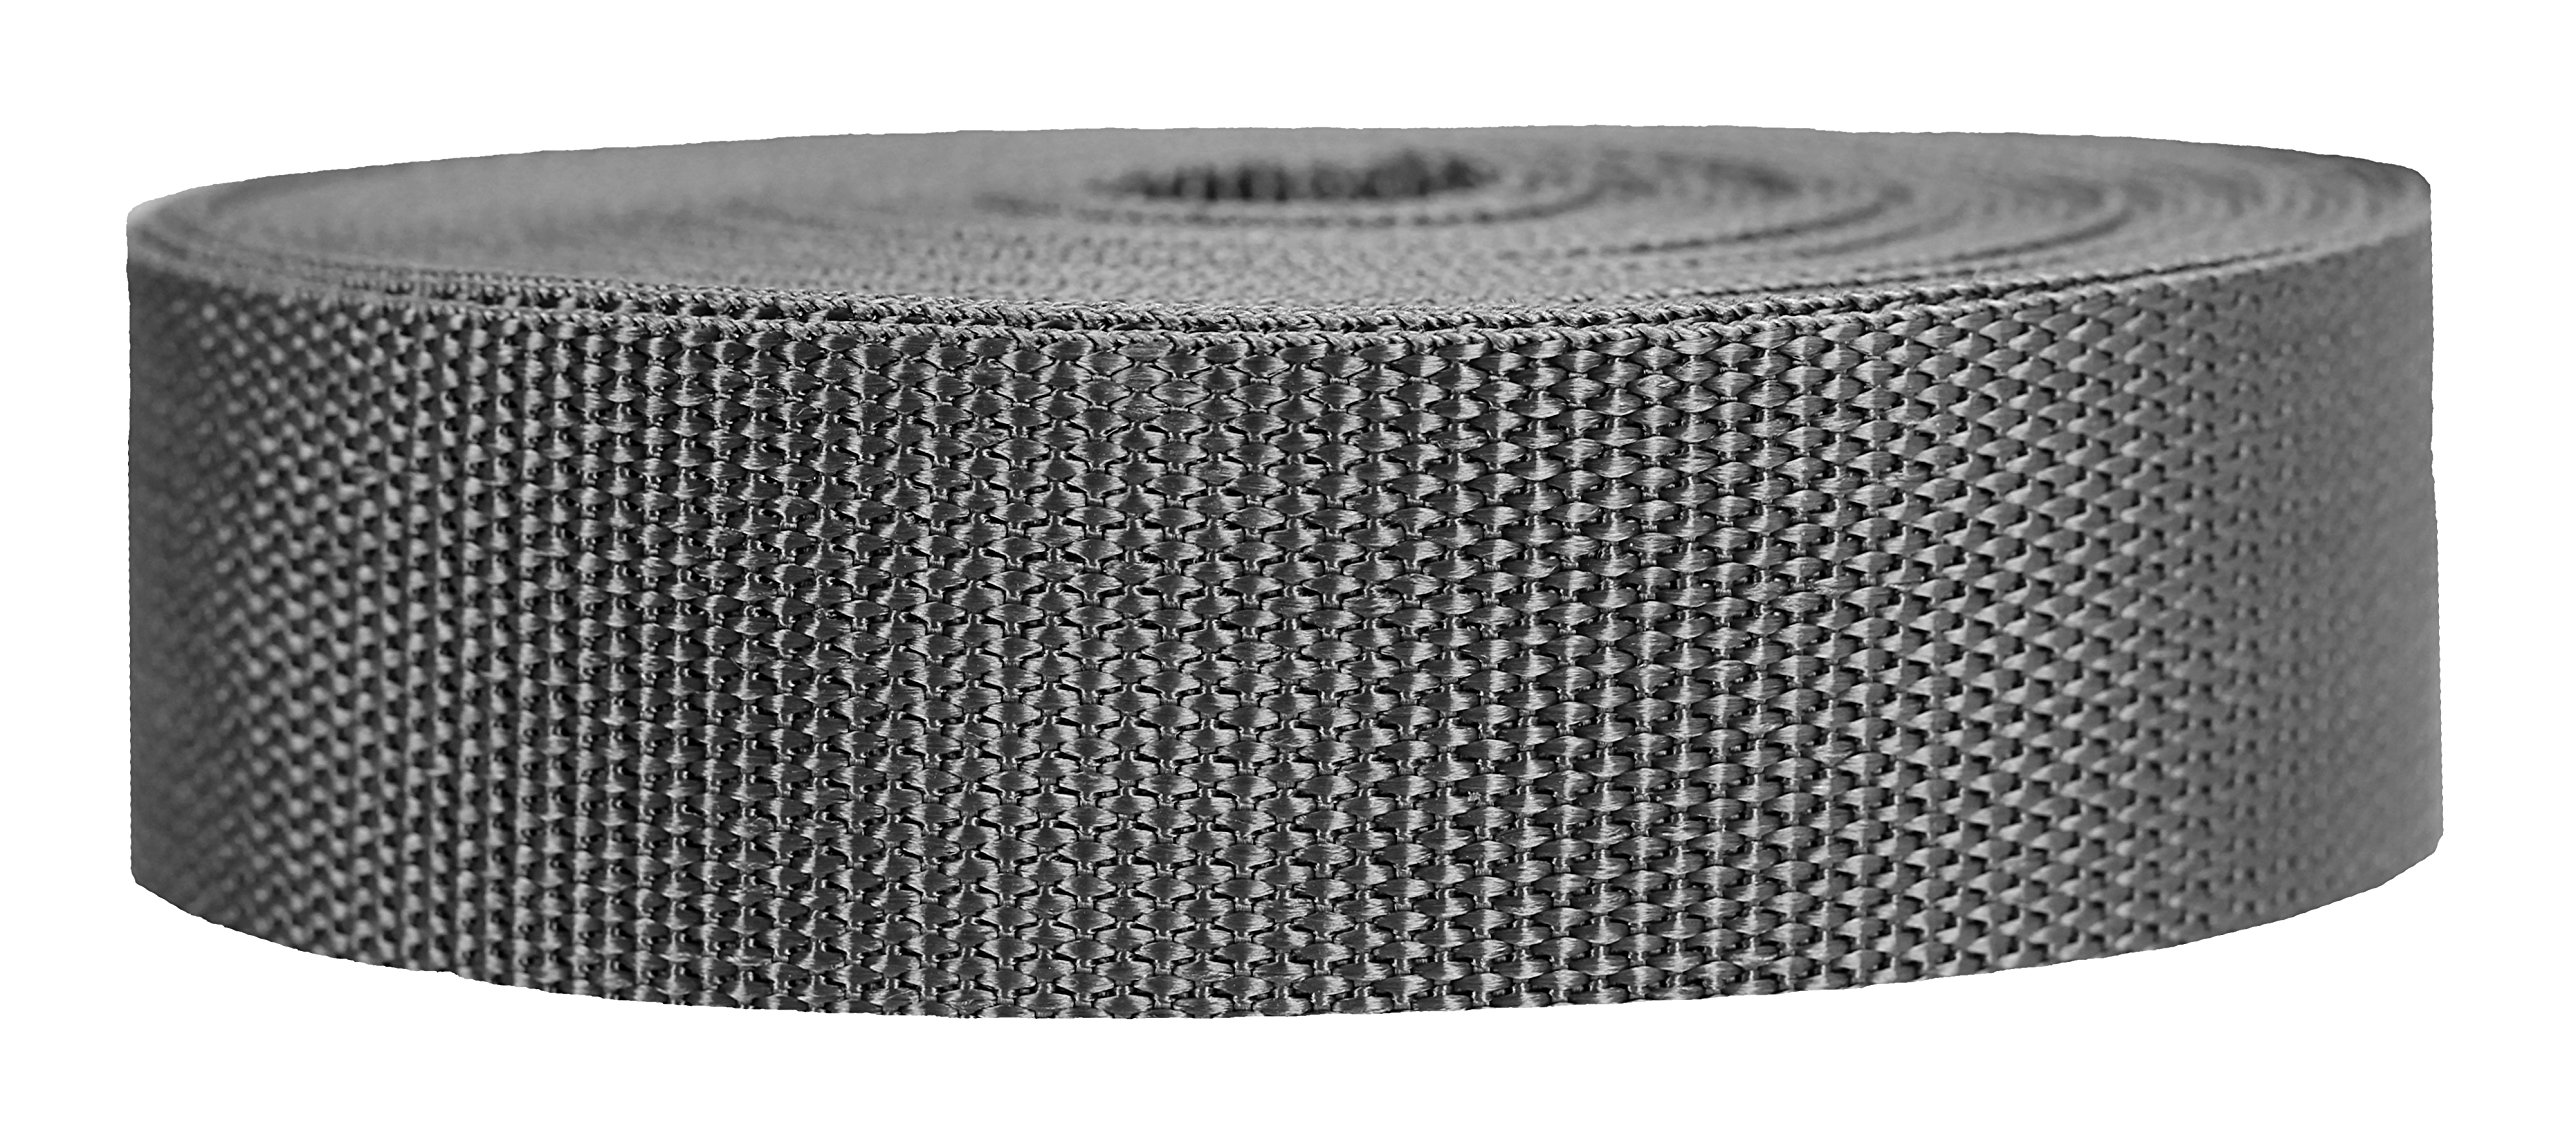 Strapworks Heavyweight Polypropylene Webbing - Heavy Duty Poly Strapping for Outdoor DIY Gear Repair, 1.5 Inch x 10 Yards, Charcoal